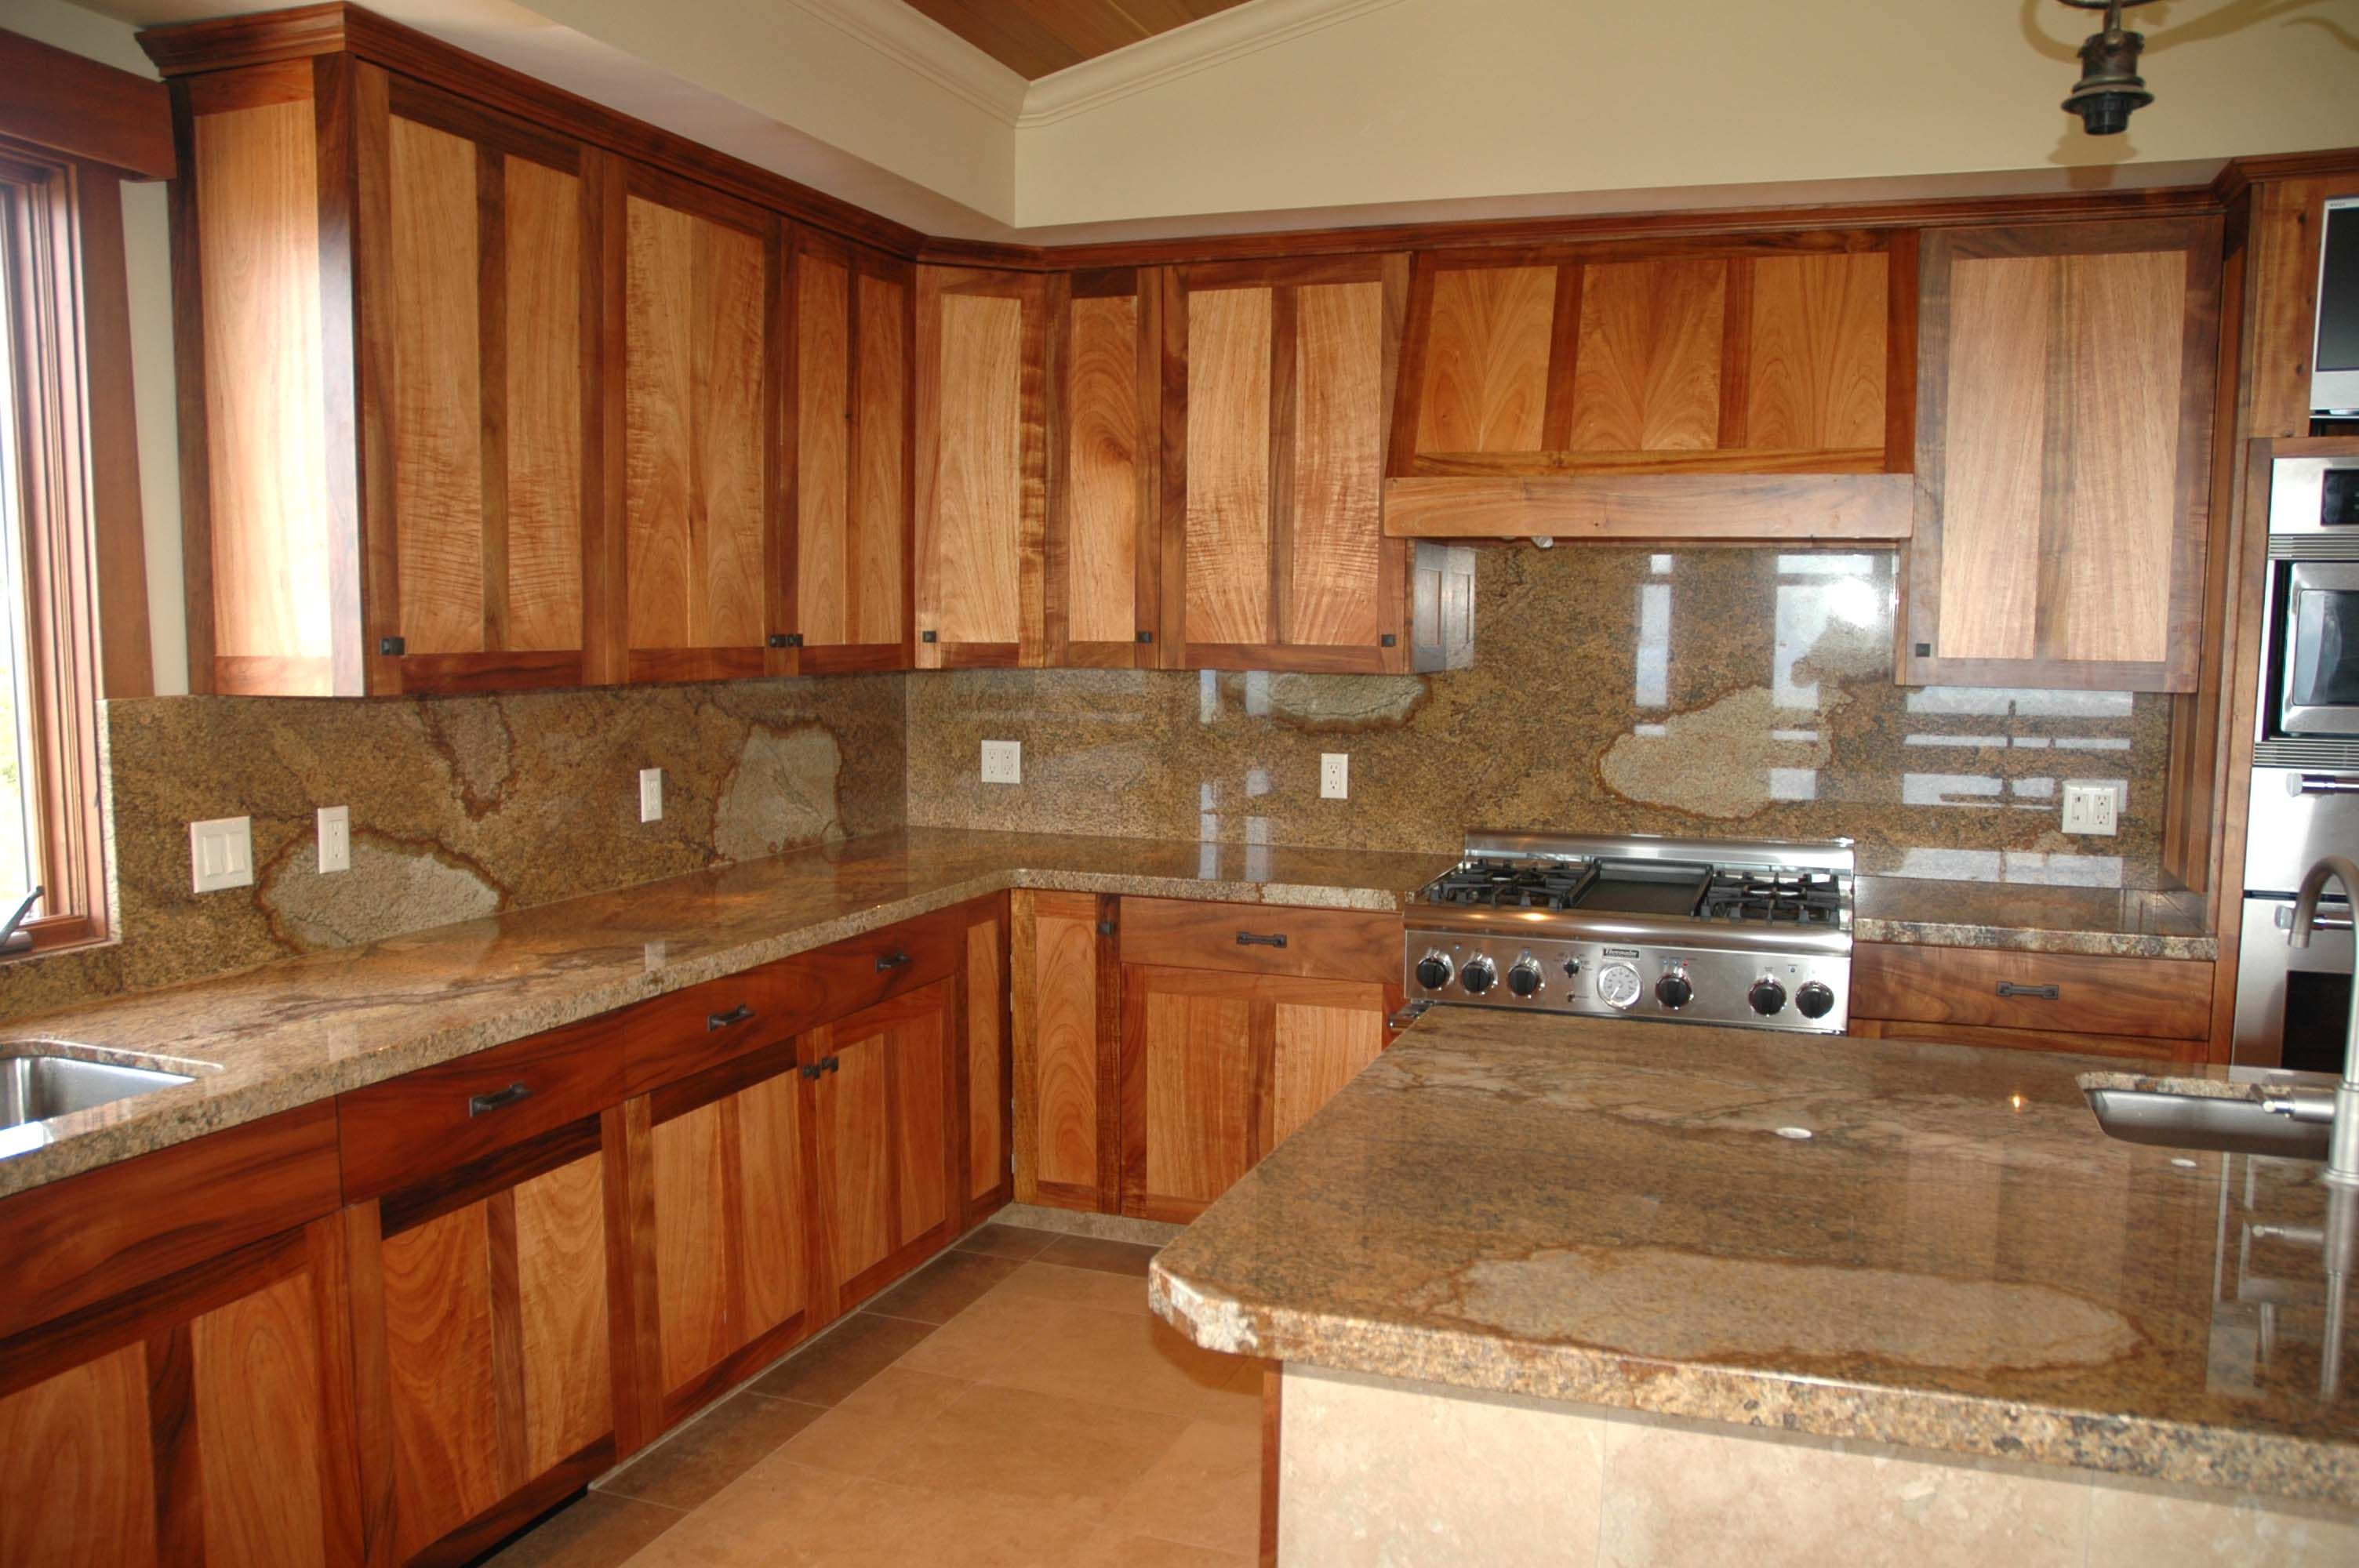 Custom Cabinets Custom Koa Kitchen In Kula Maui Hawaii Amanda 39 S Baby Shower Pinterest